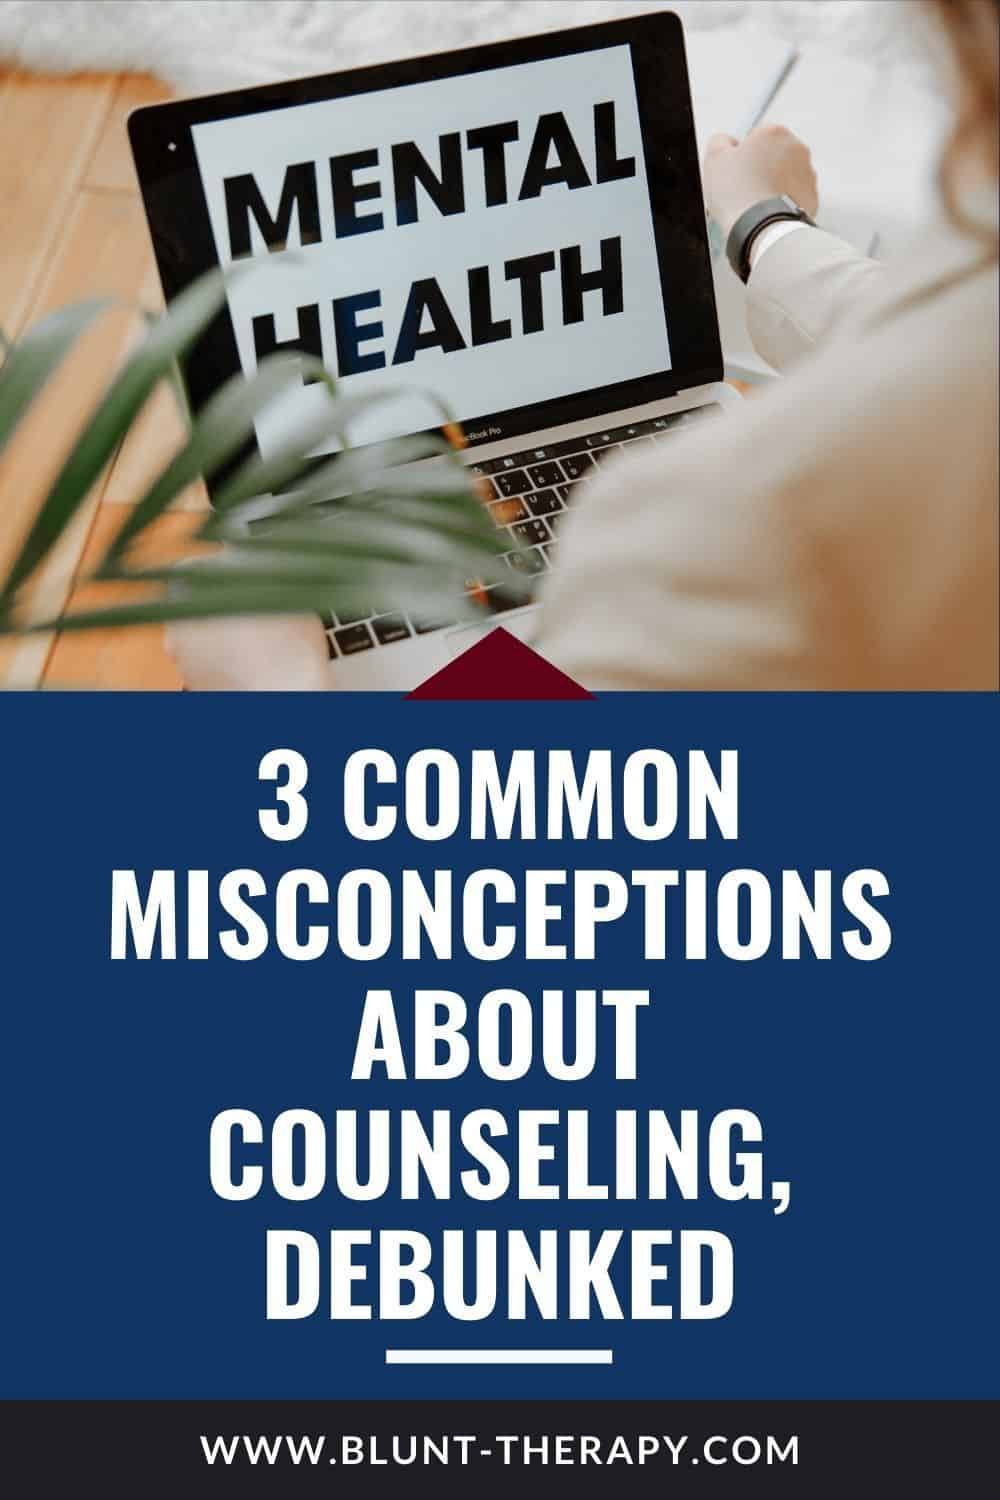 3 Common Misconceptions About Counseling, Debunked